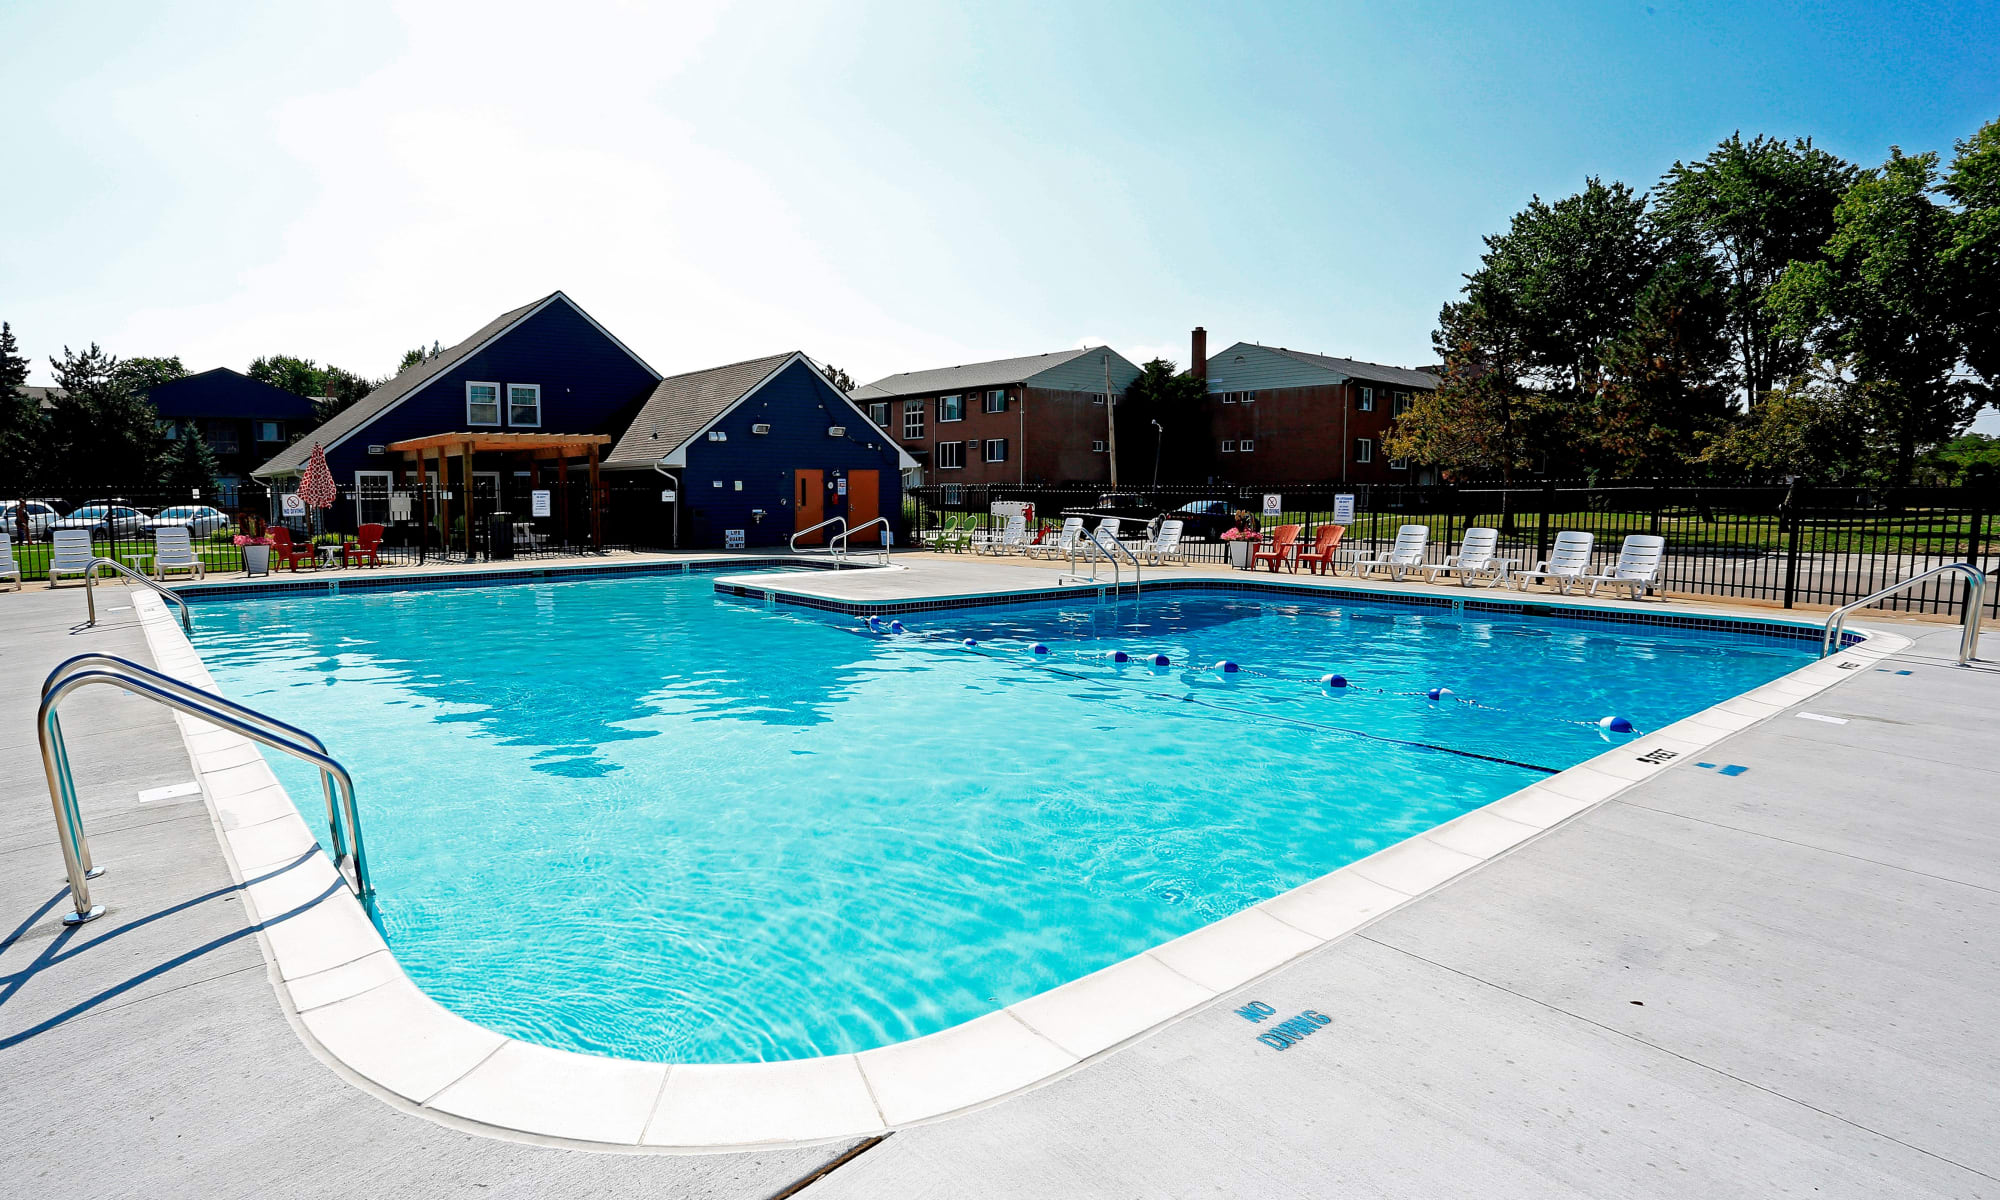 Outdoor swimming pool at The Loop on Greenfield in Oak Park, Michigan